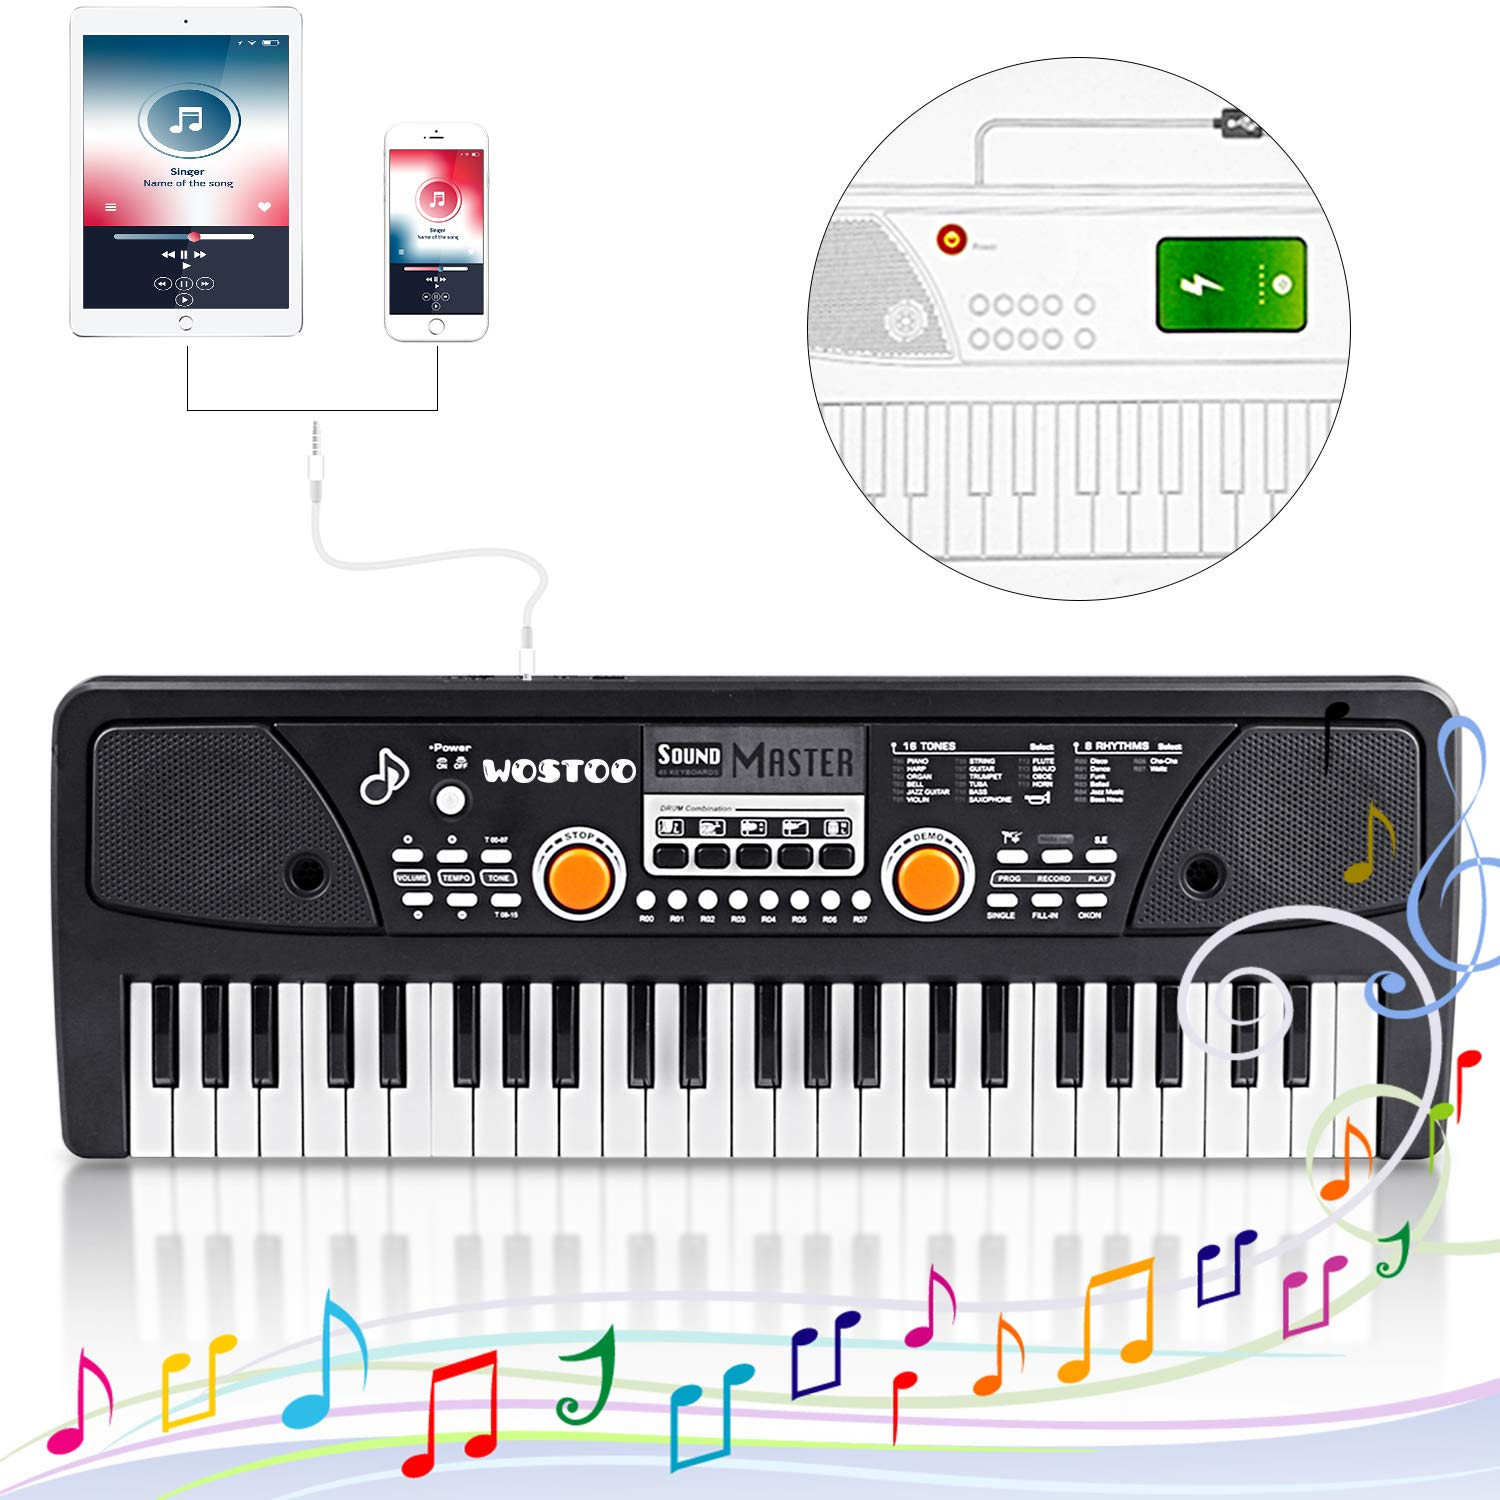 Kids Piano Keyboard 49 Keys- Multi-function Portable Piano Keyboard Electronic Organ with Charging function for Kids and Beginners Chargeable